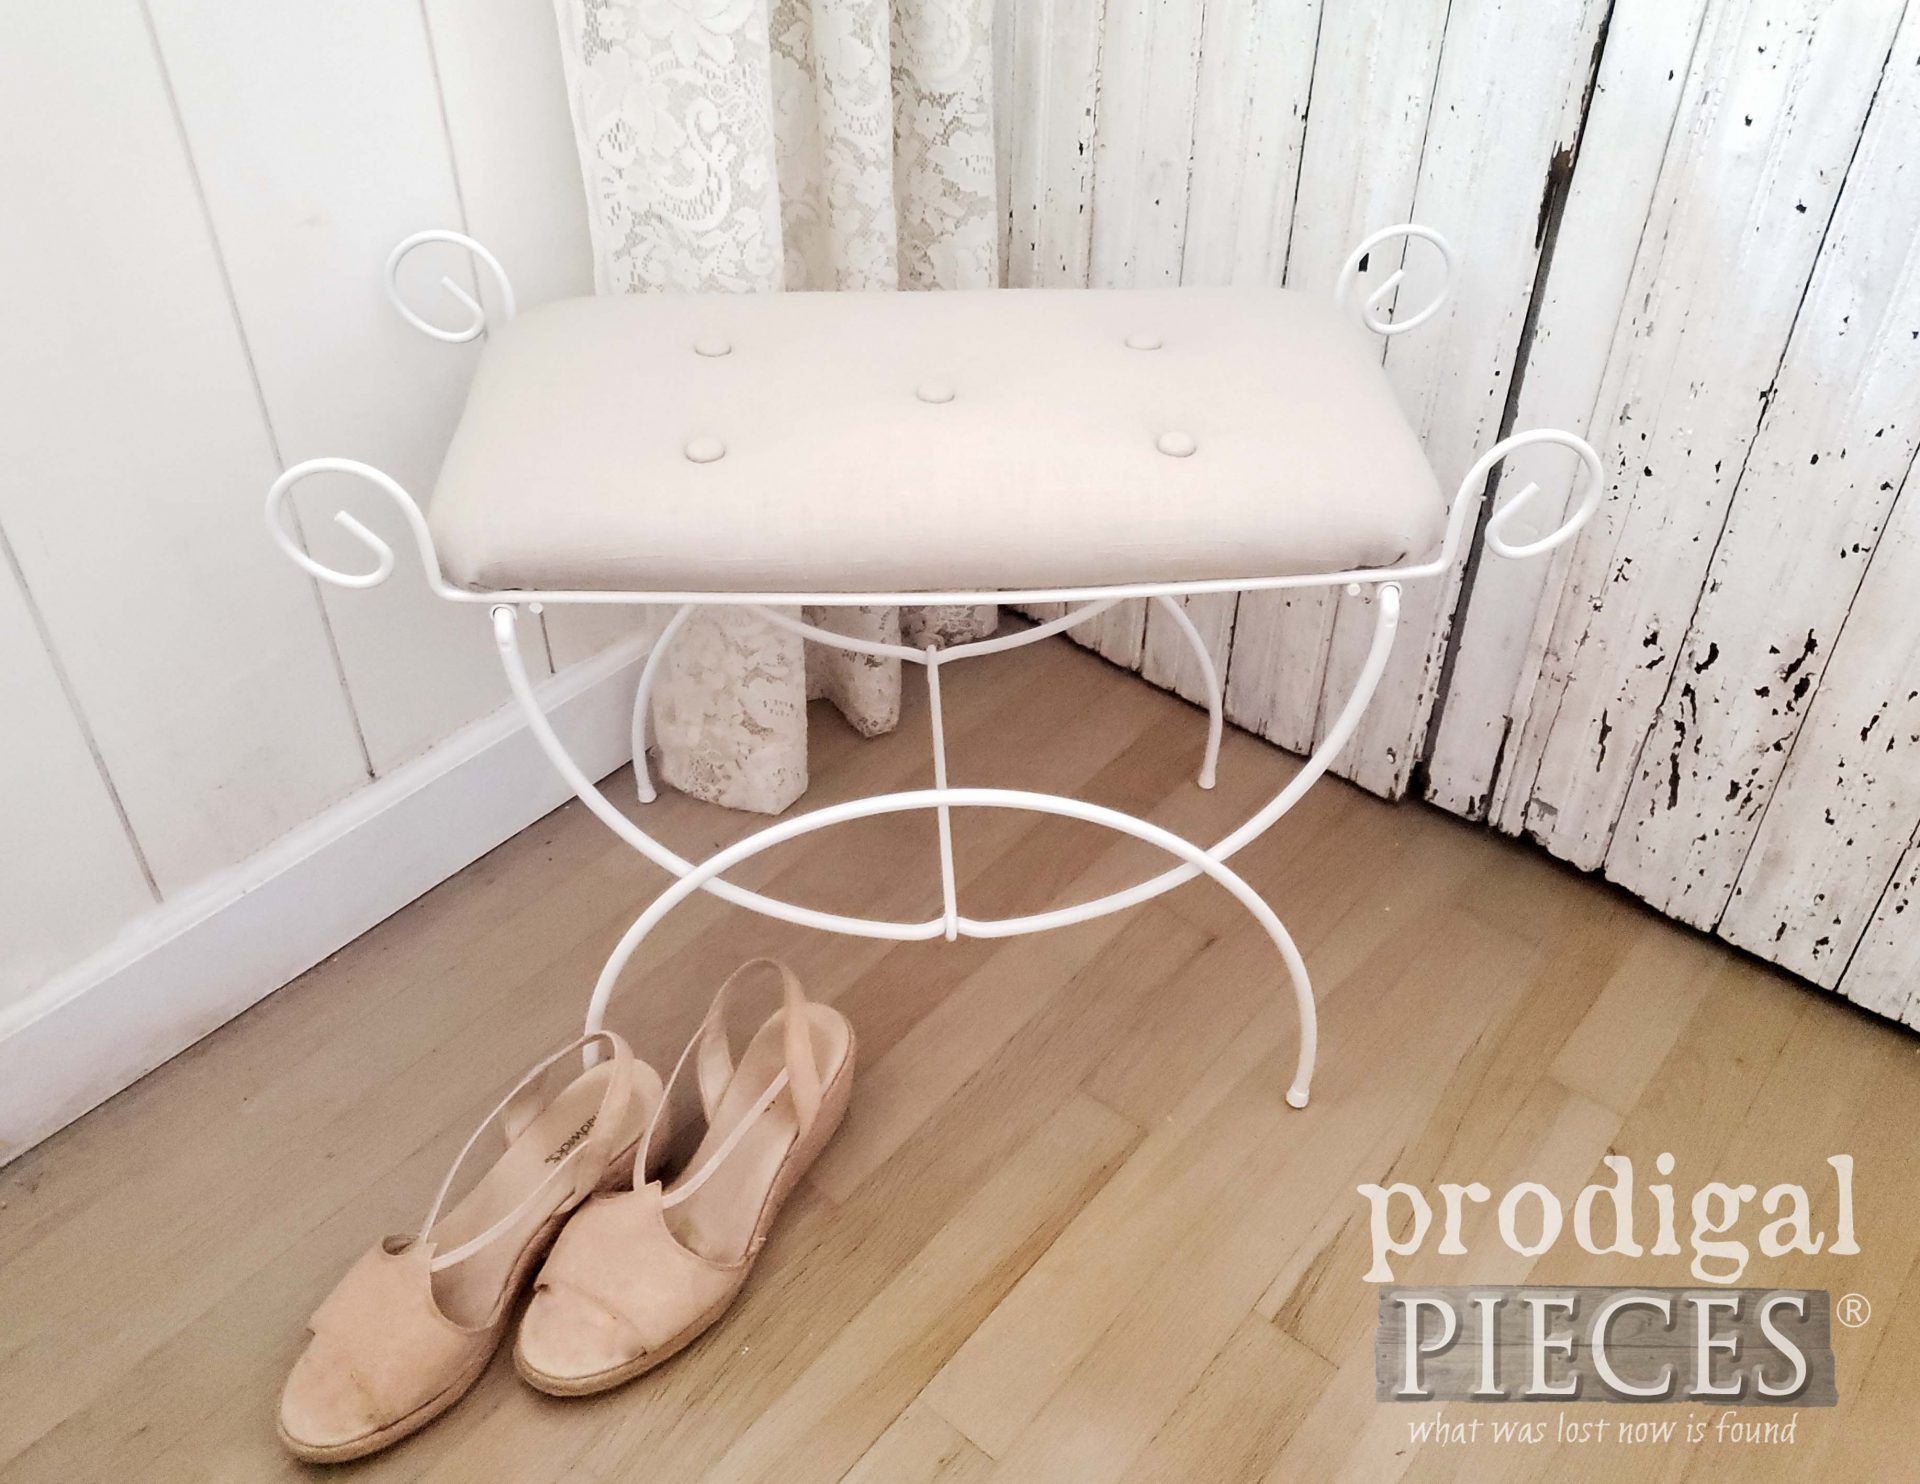 Vintage Wire Vanity Seat with Tufted Linen Upholstery by Larissa of Prodigal Pieces | prodigalpieces.com #prodigalpieces #diy #furniture #home #homedecor #farmhouse #linen